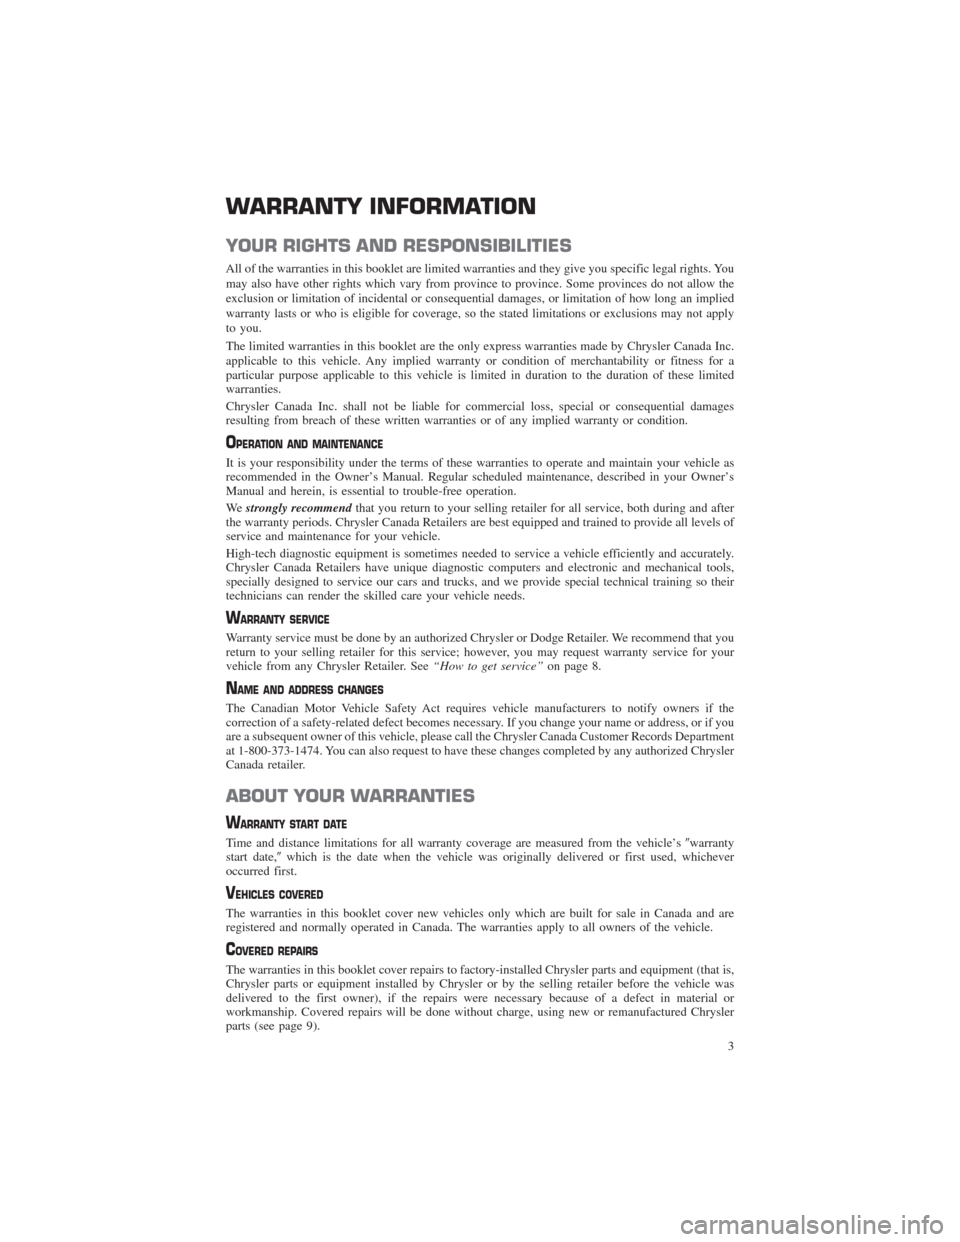 CHRYSLER 200 2014 1.G Warranty Booklet, Page 5